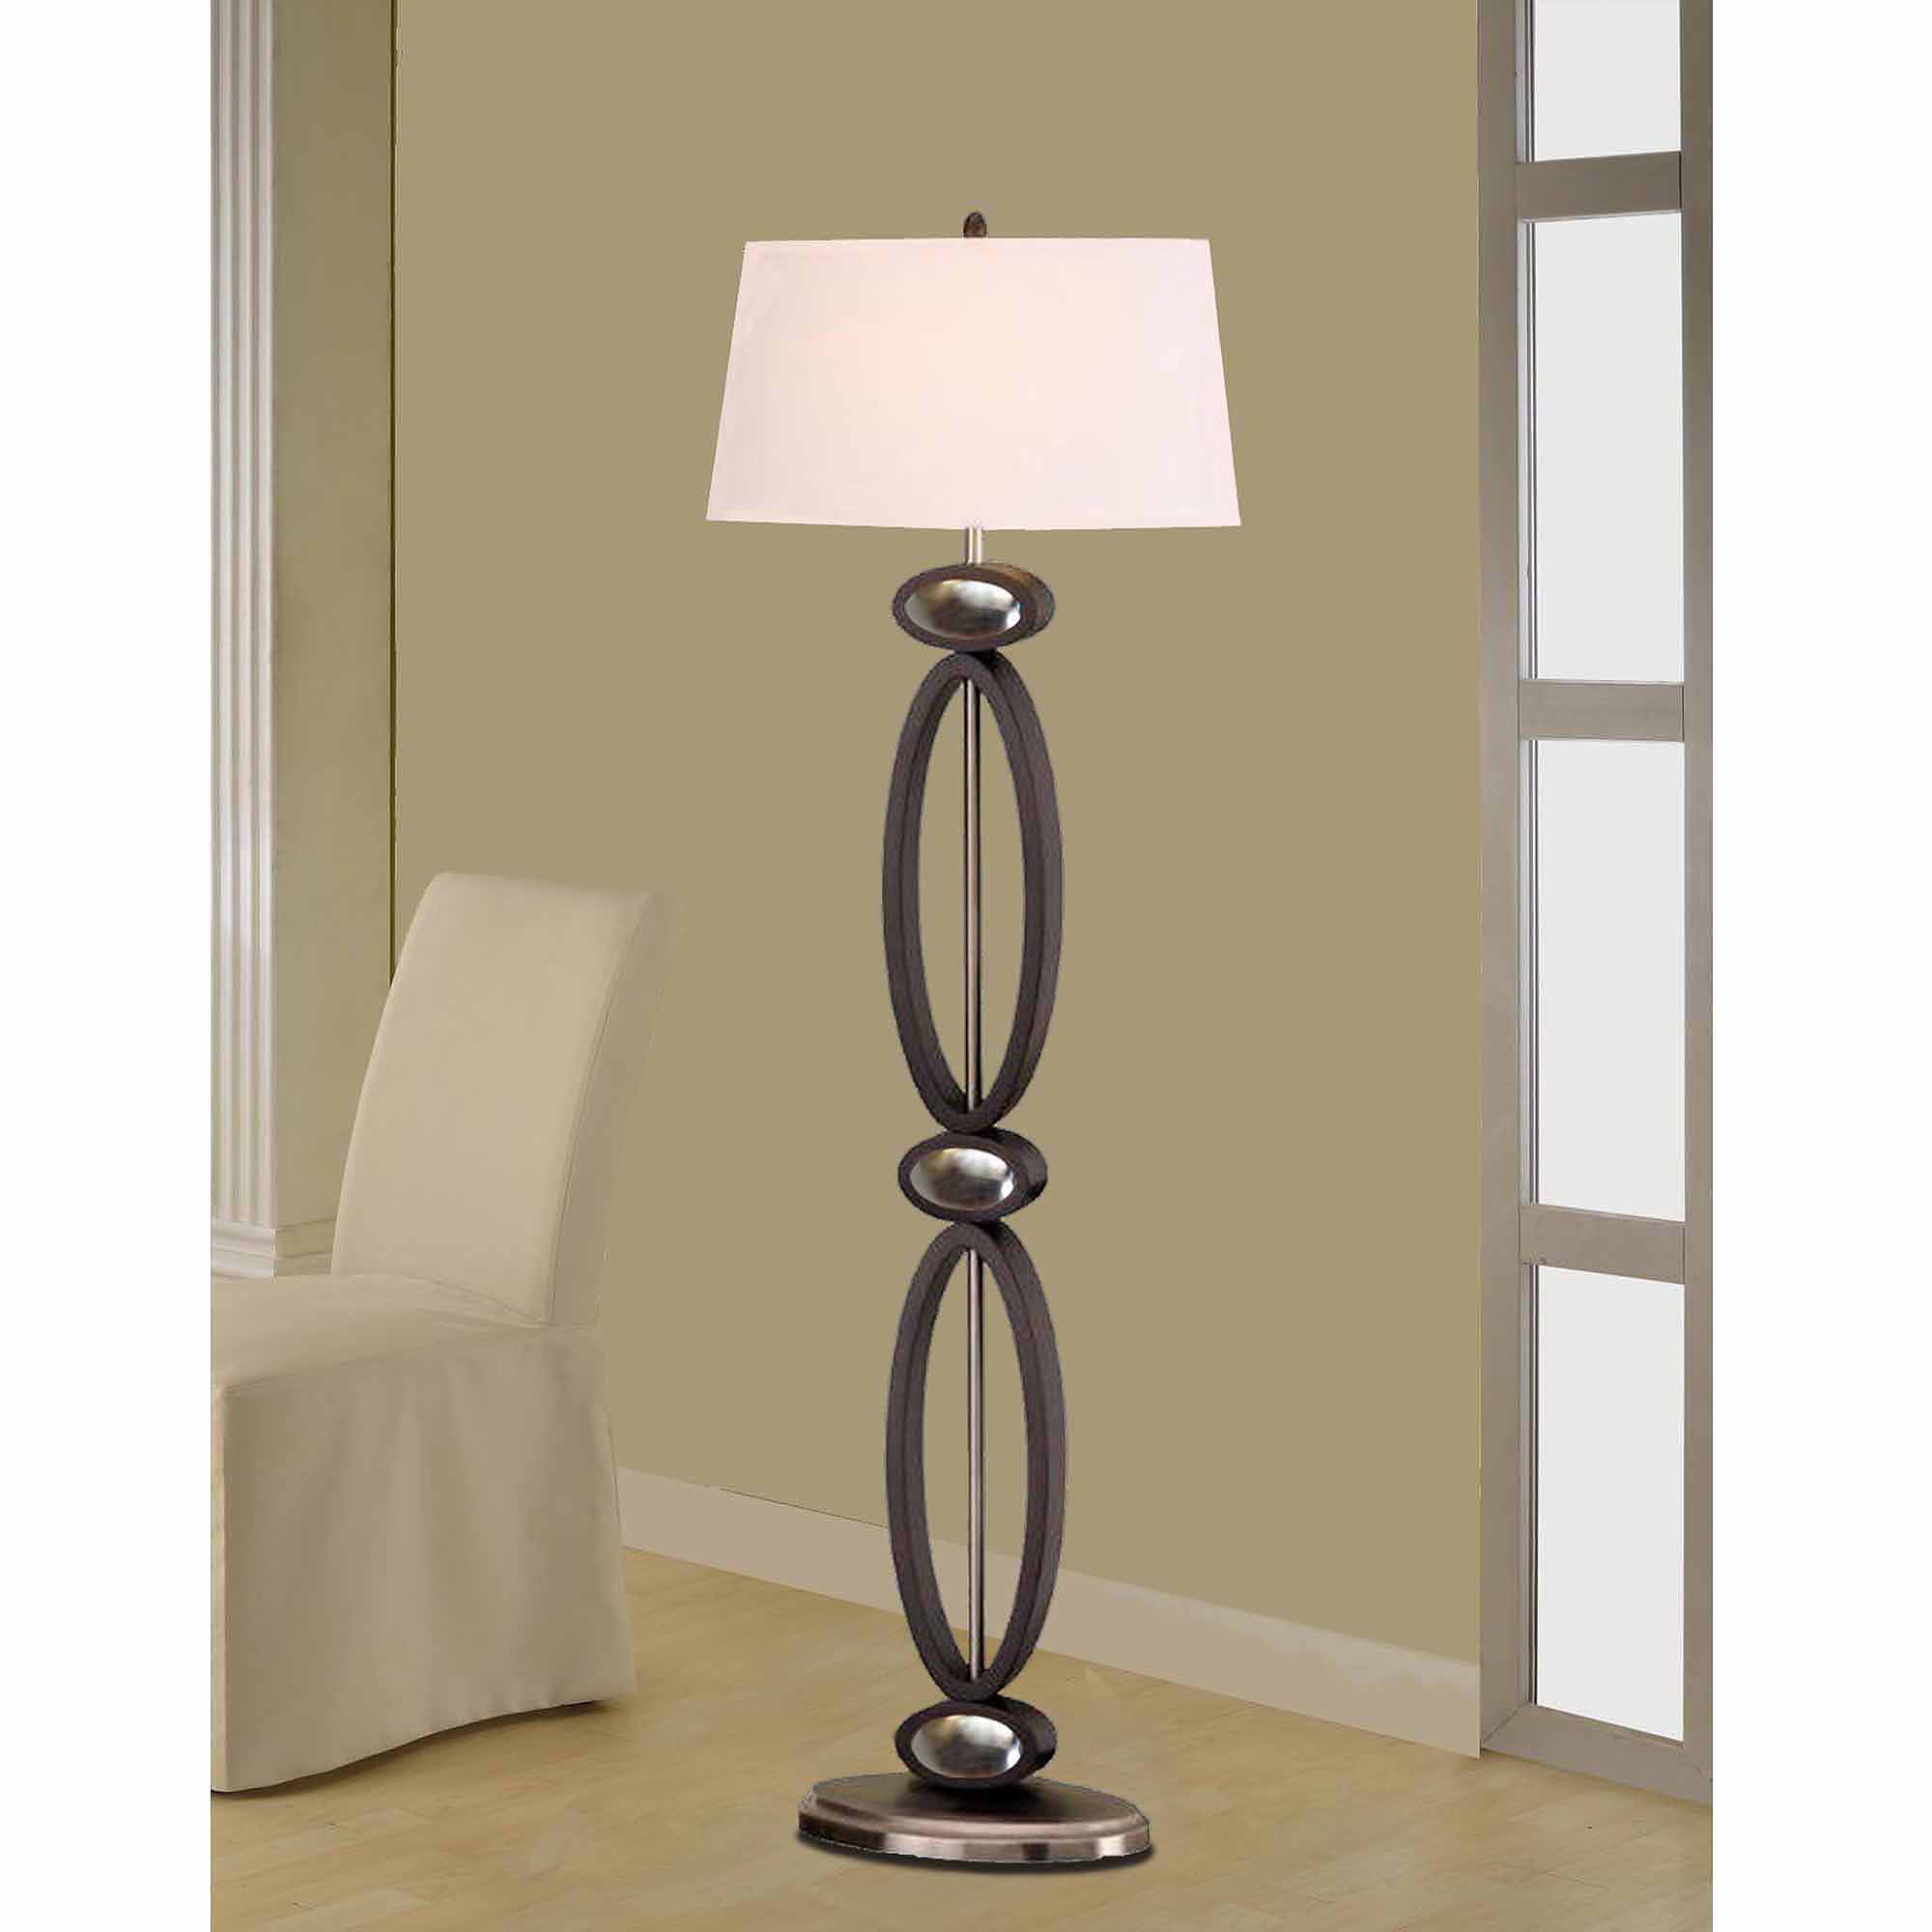 "Artiva USA 61"" Infinity Dark Walnut Wood/Brushed Steel Floor Lamp"